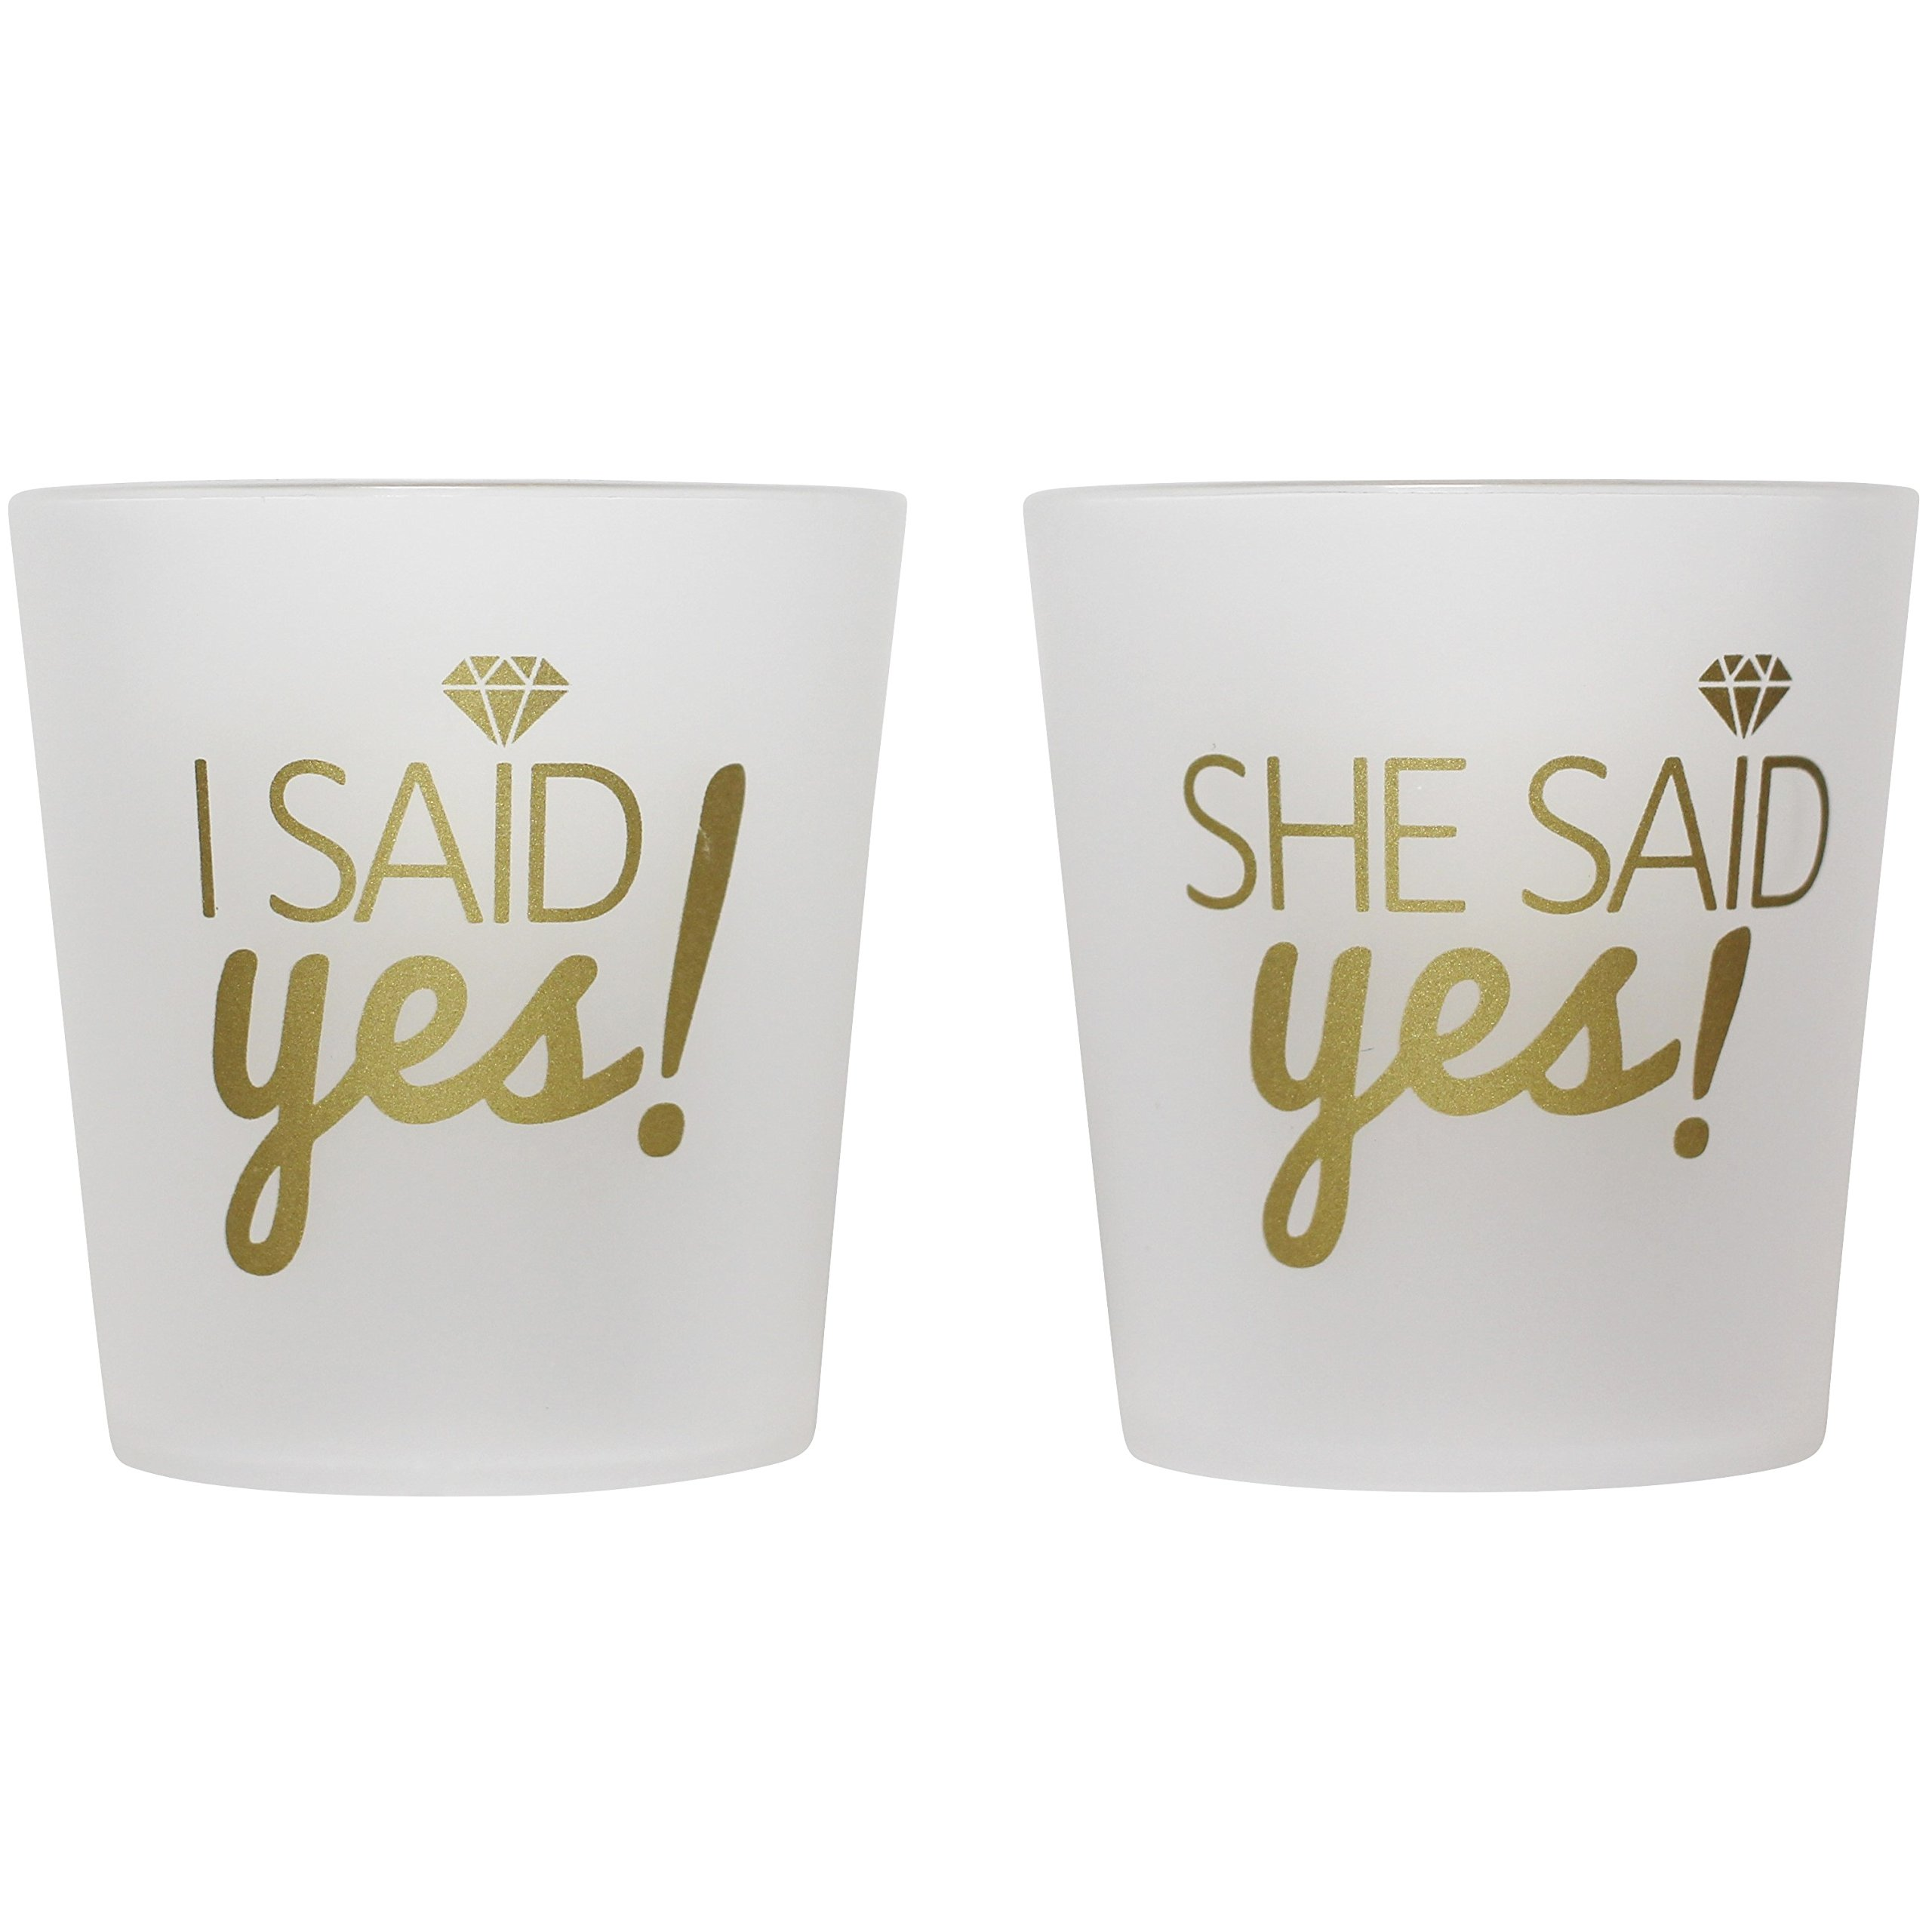 """Bridal 2 oz. Shot Glasses 12 Cups Set - 1 """"I Said Yes!"""" & 11 """"She Said Yes!"""" - Bridesmaids, Engagement, Bachelorette, Shower Party, Wedding - Props, Favors - Frosted & Gold - High Quality Guarantee by Breeze Moments"""